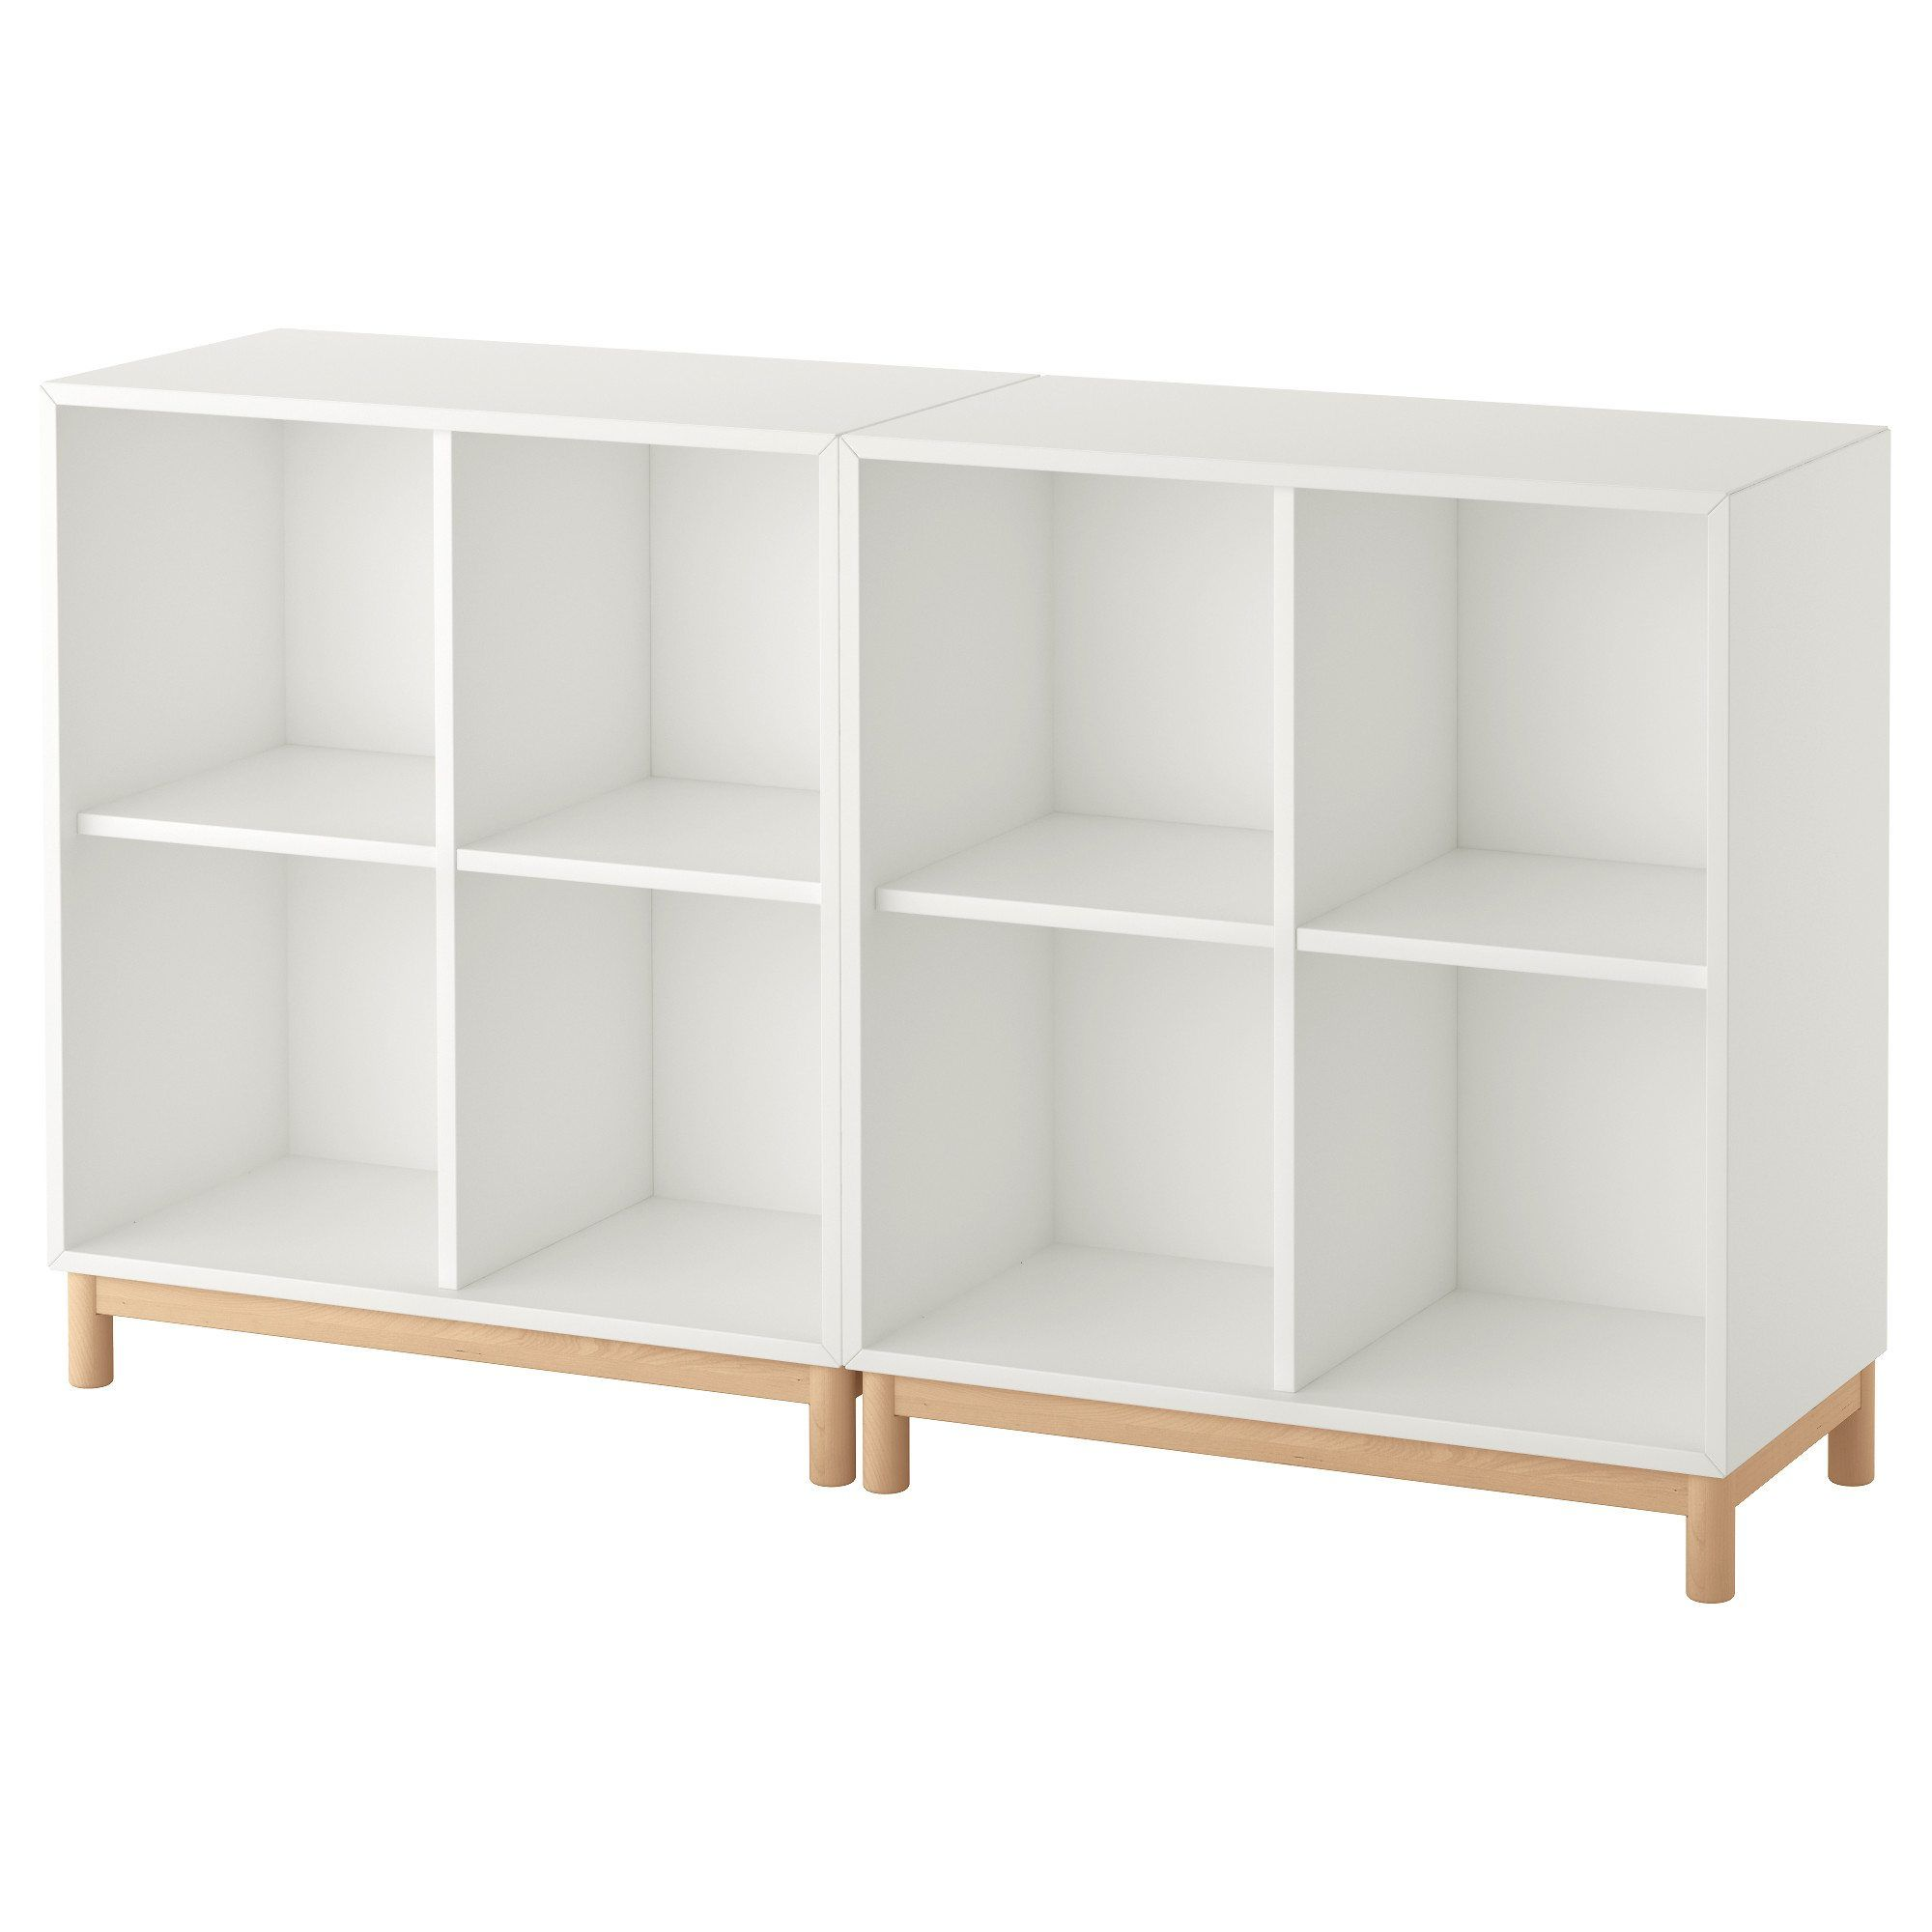 ikea expedit is discontinued what now